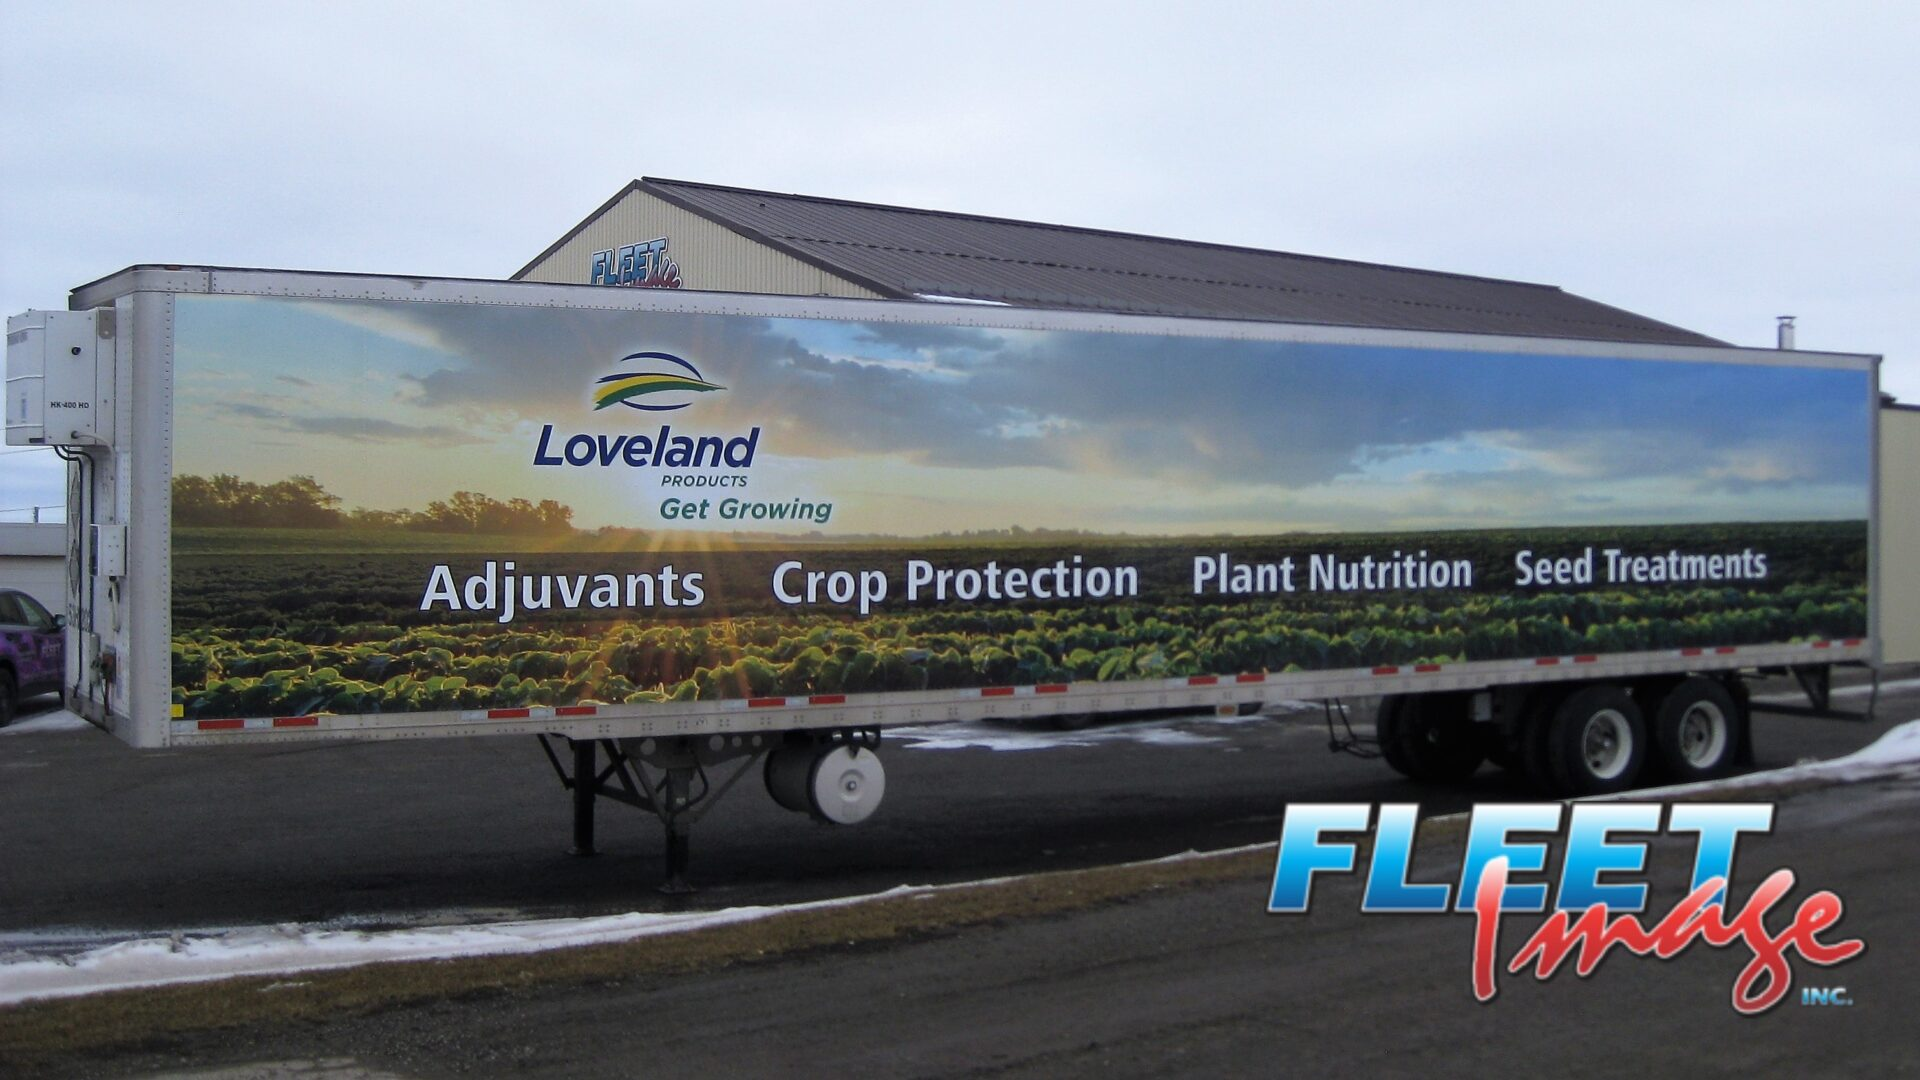 Loveland Products Get Growing decal sticker on a truck